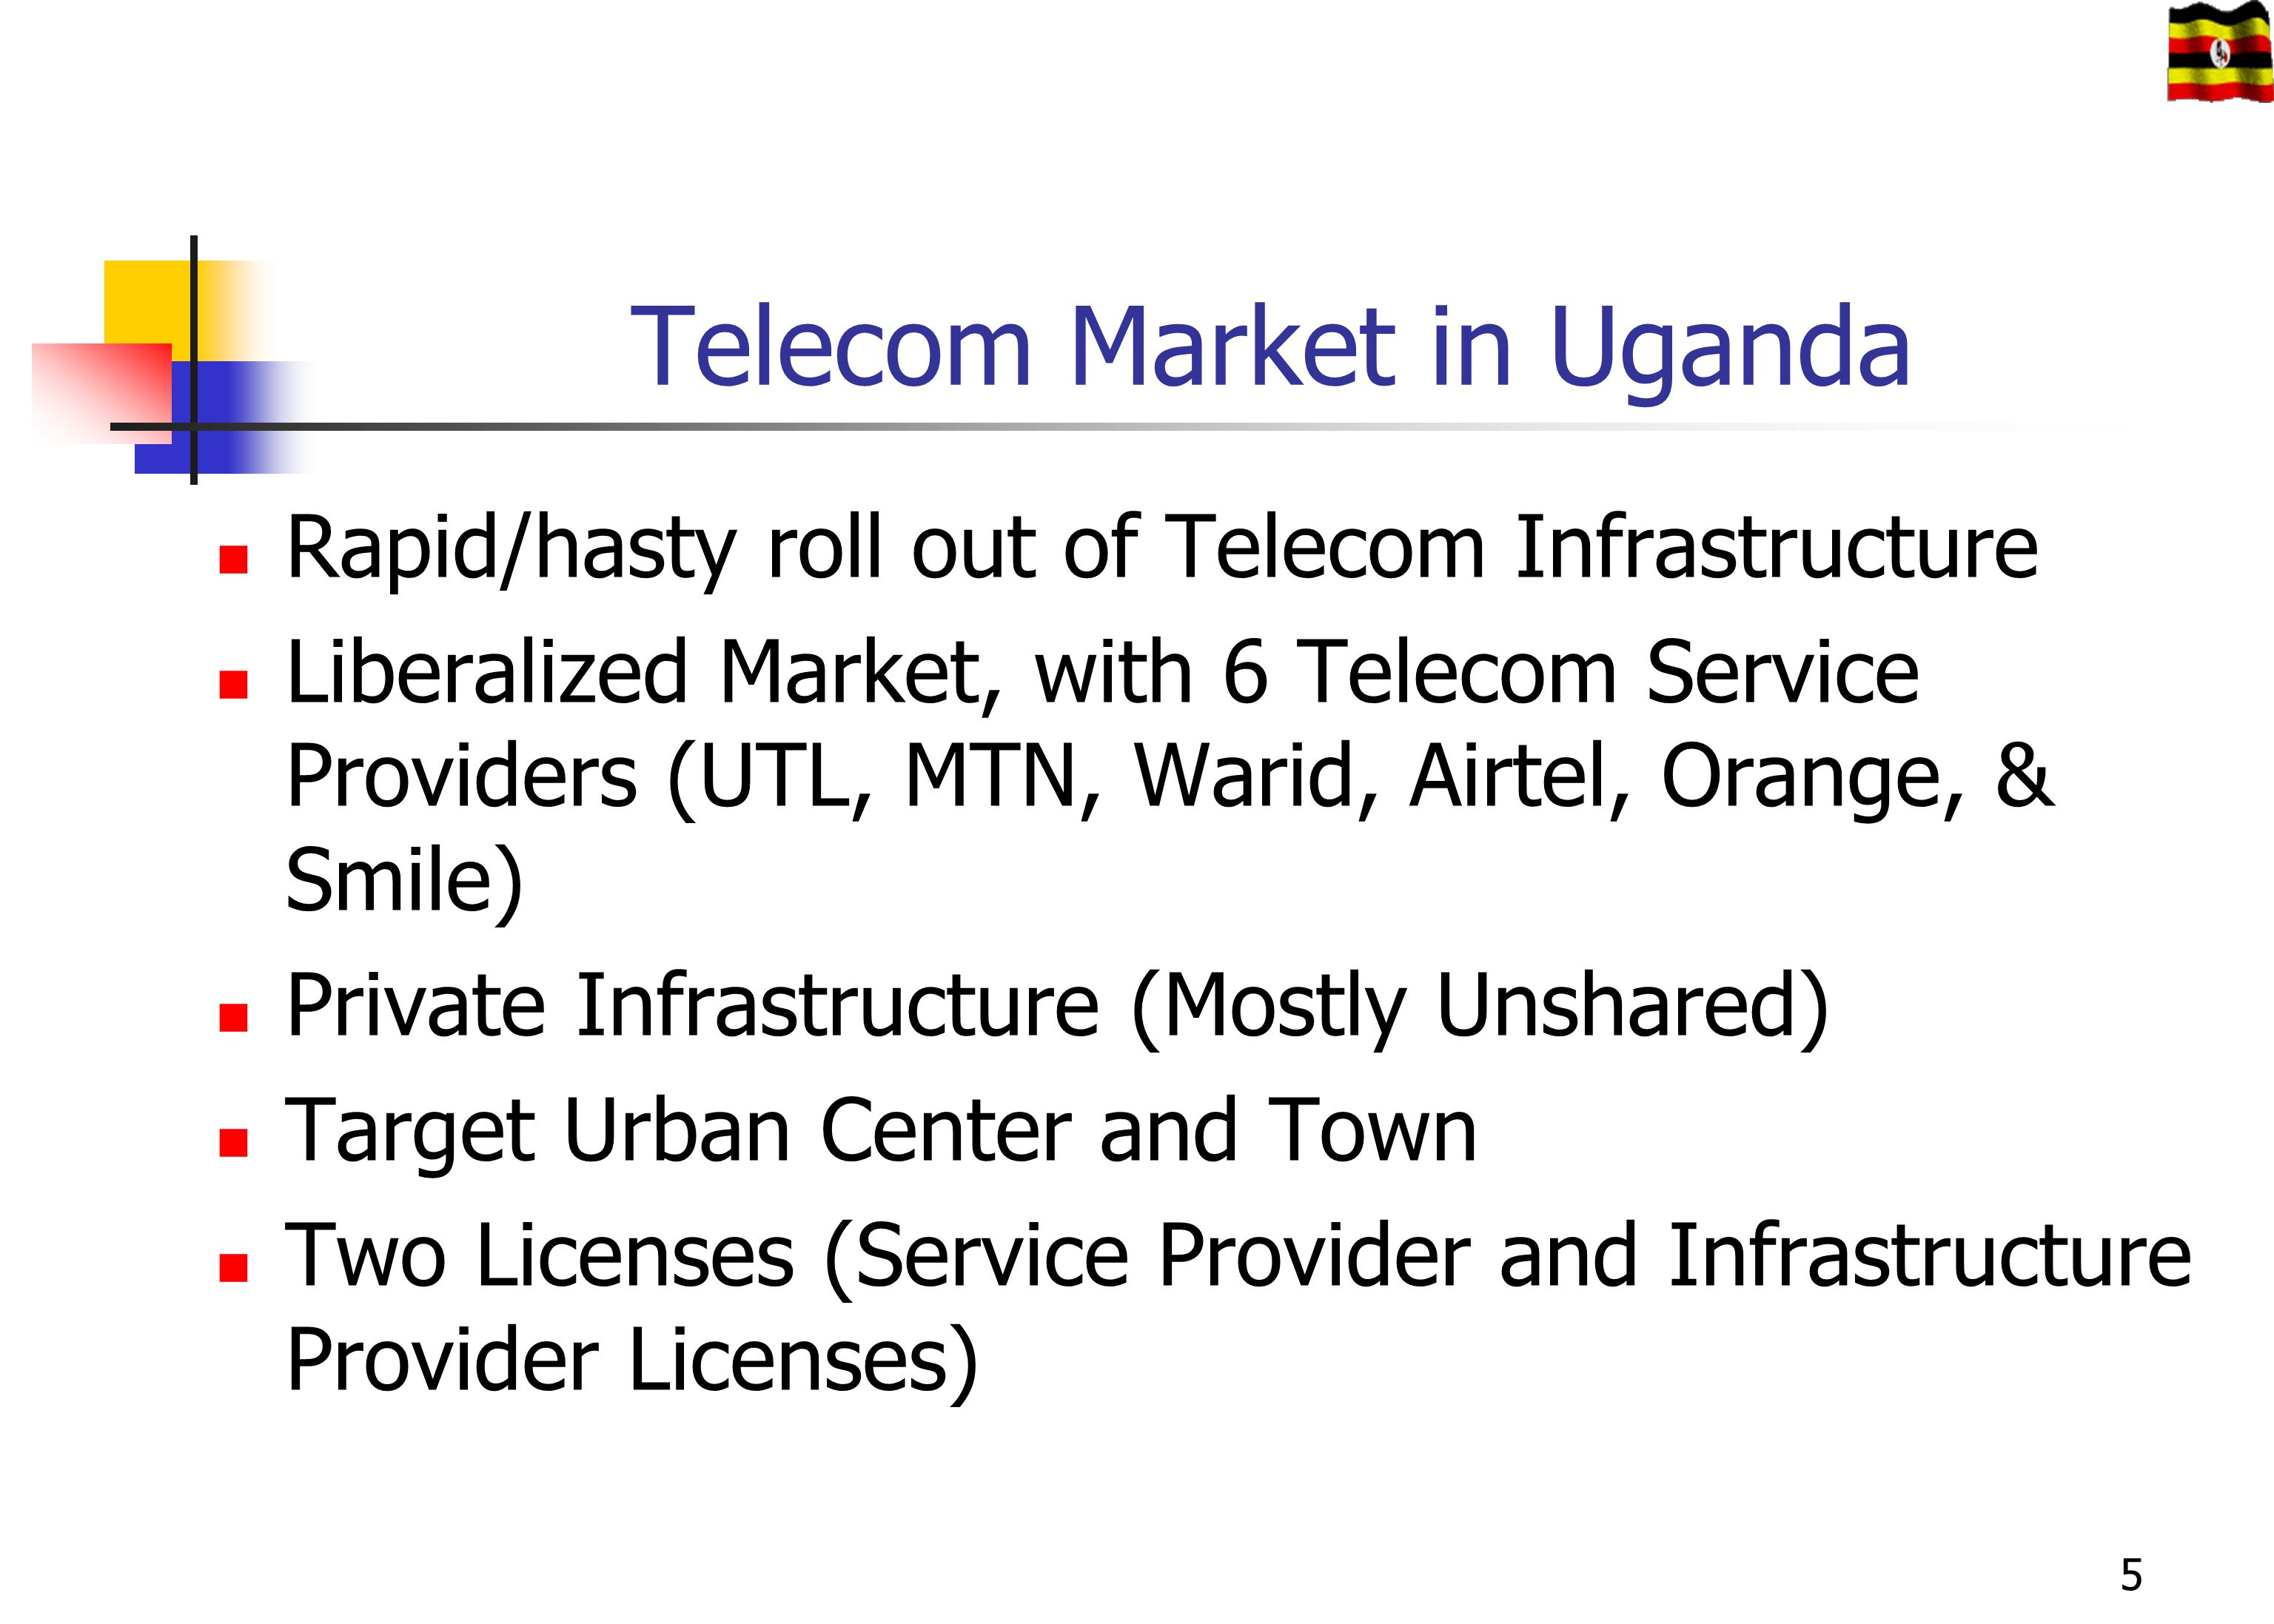 Telecom Market in Uganda Rapid/hasty roll out of Telecom Infrastructure Liberalized Market, with 6 Telecom Service Providers (UTL, MTN, Warid, Airtel,